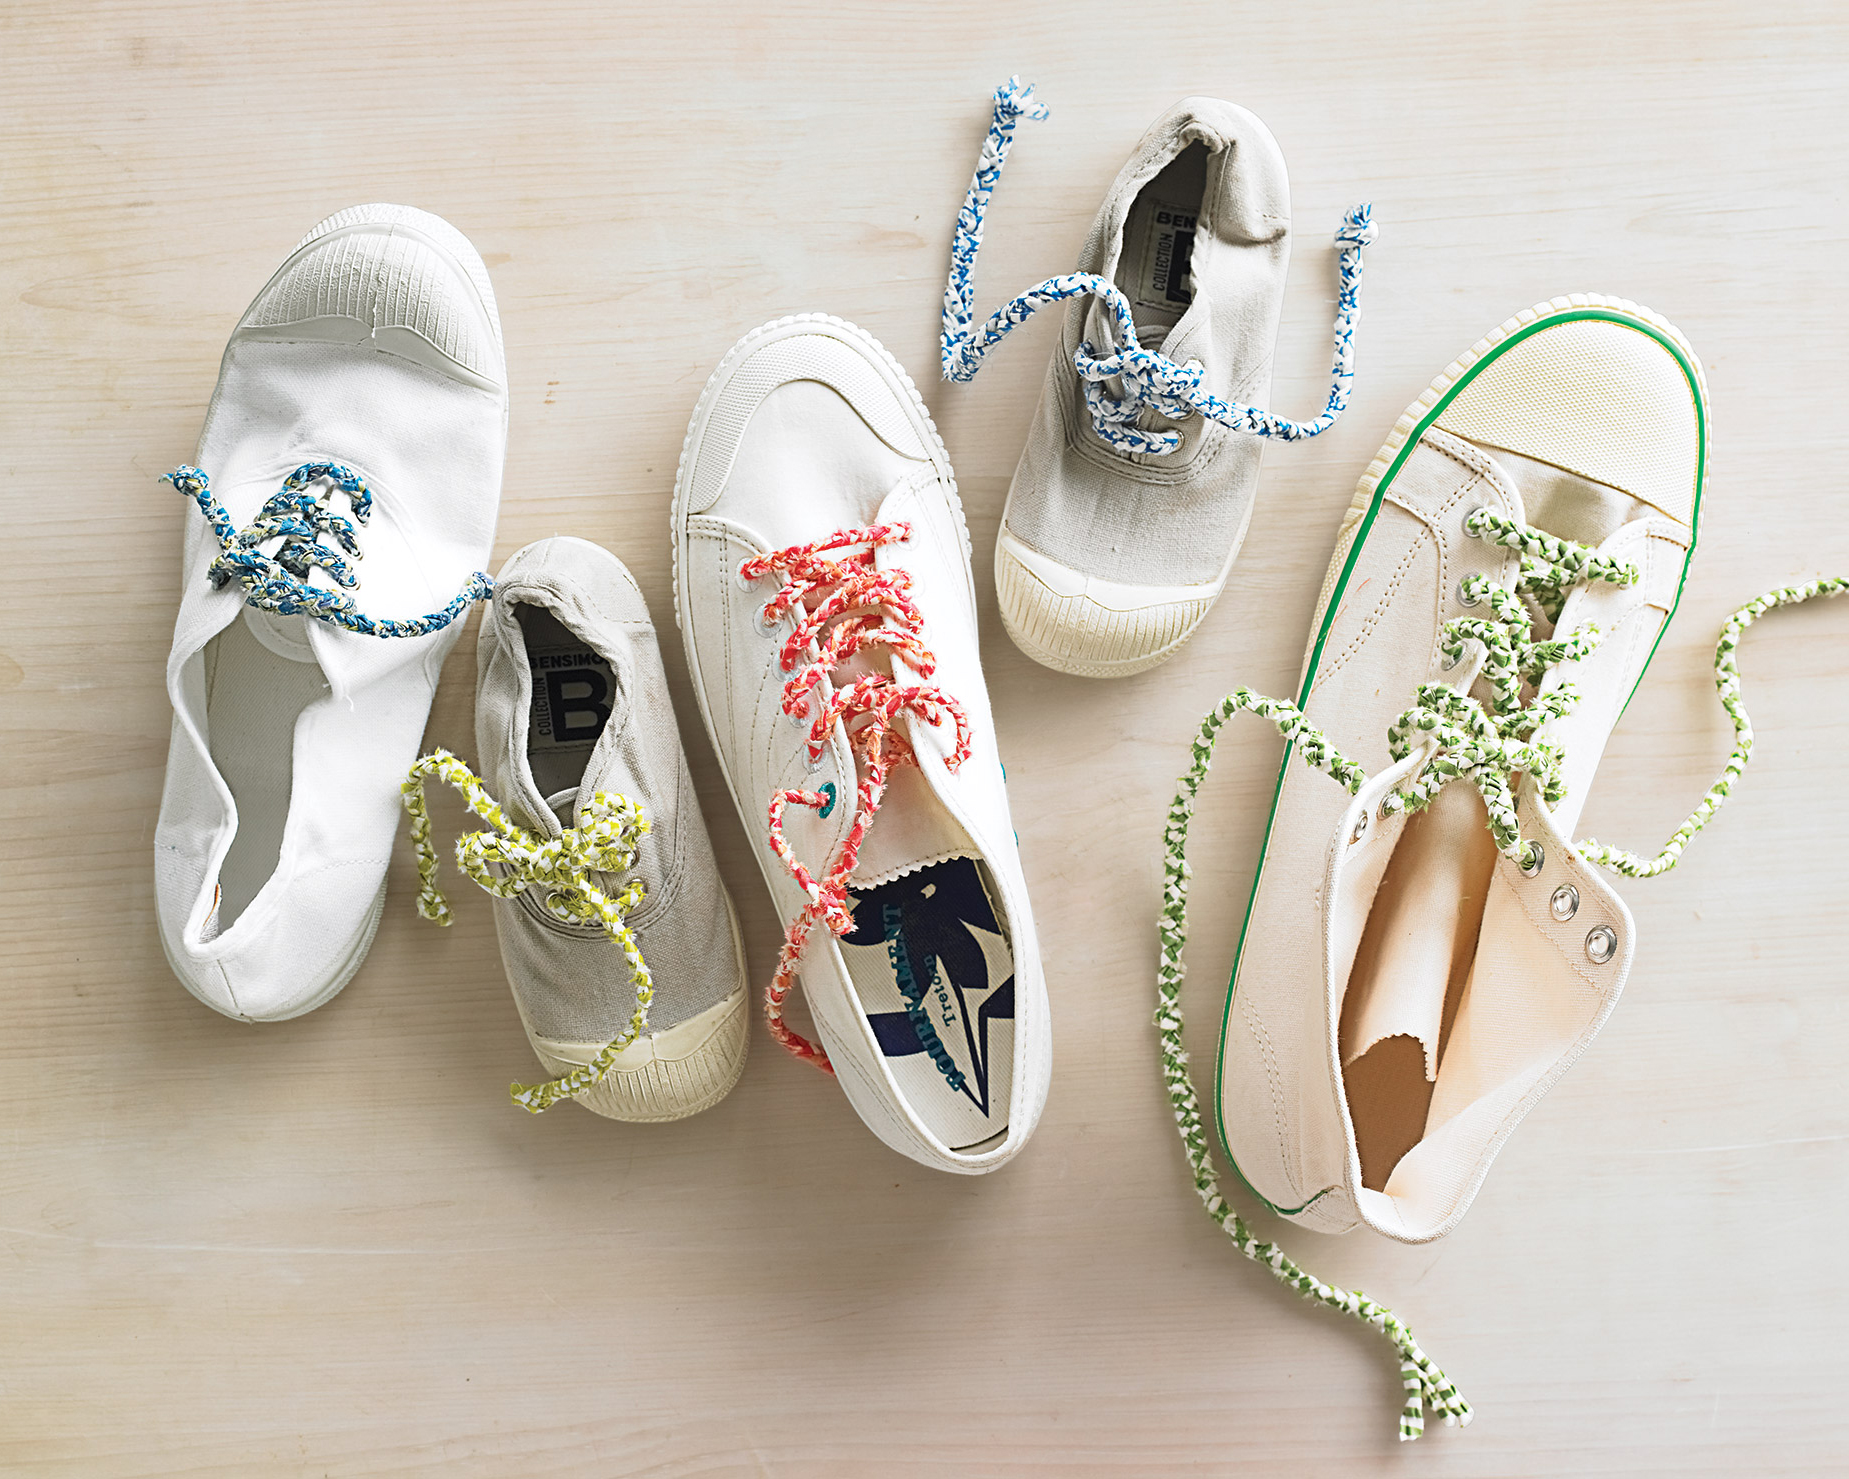 assorted white shoes